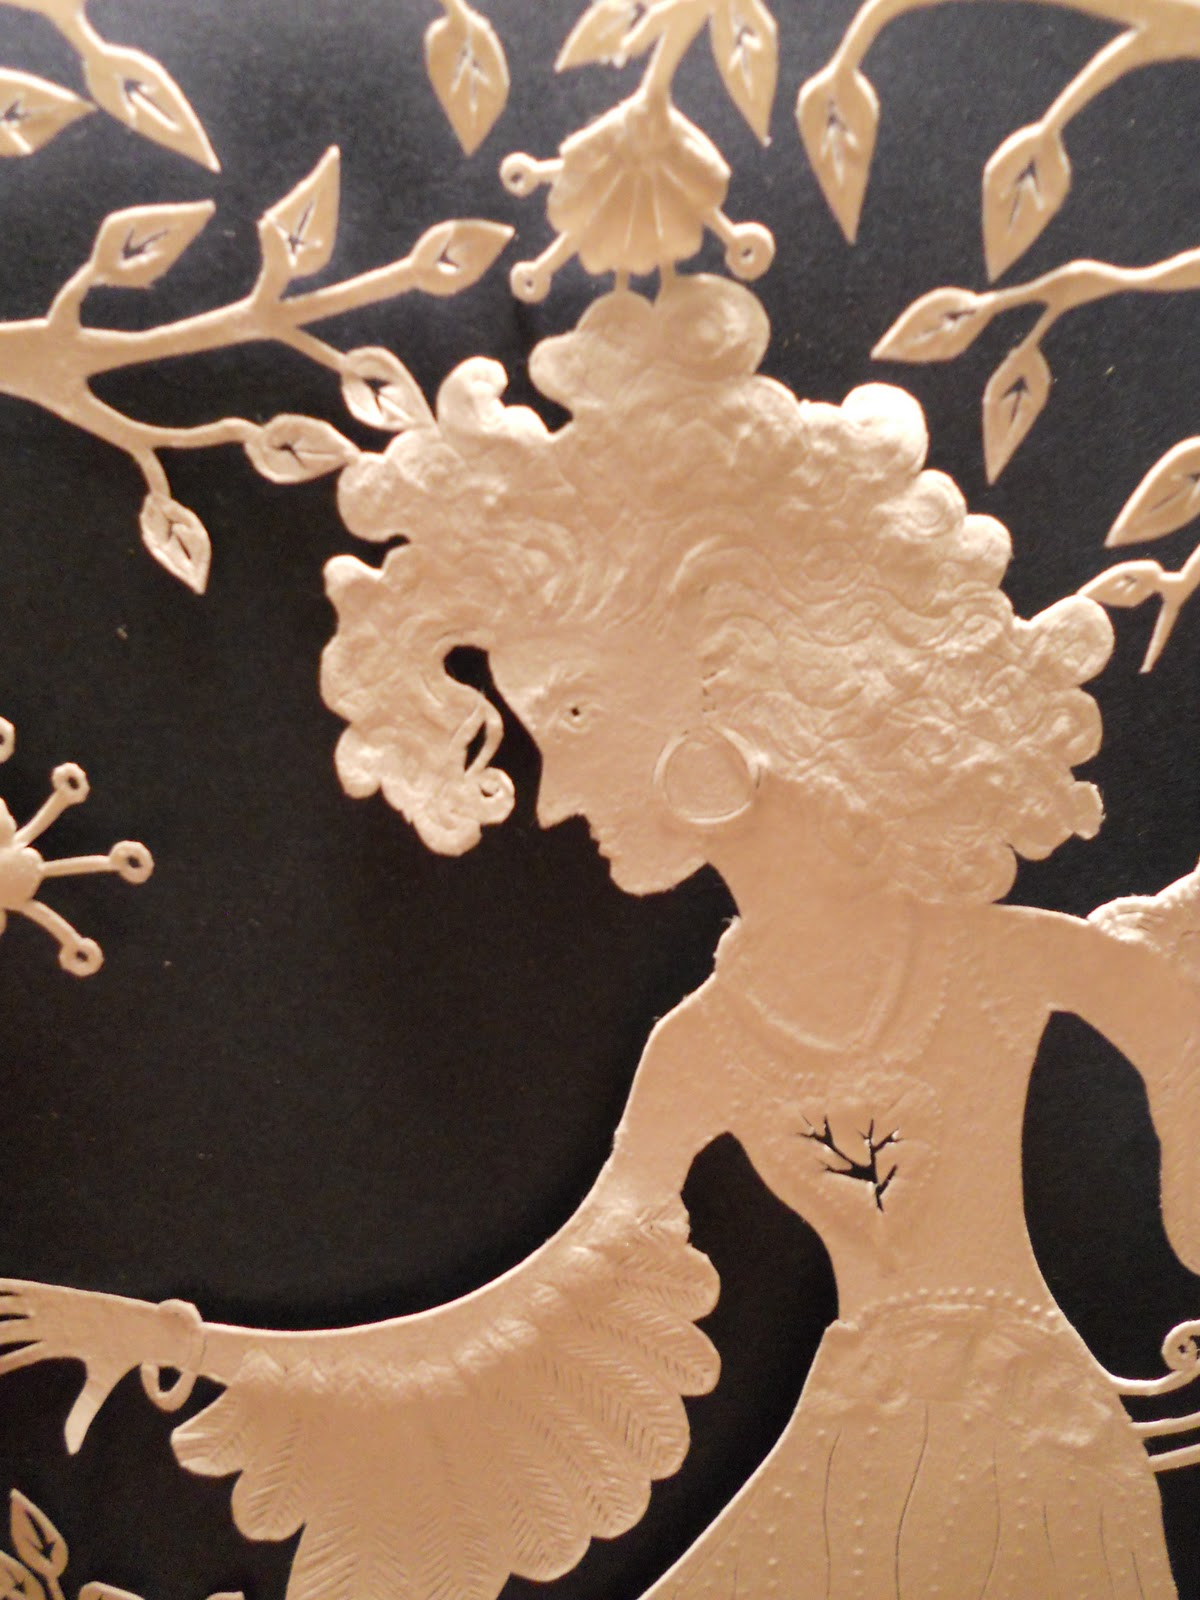 Detail of an embossed paper-cutting depicting a young woman that is ready to take flight and start her own life